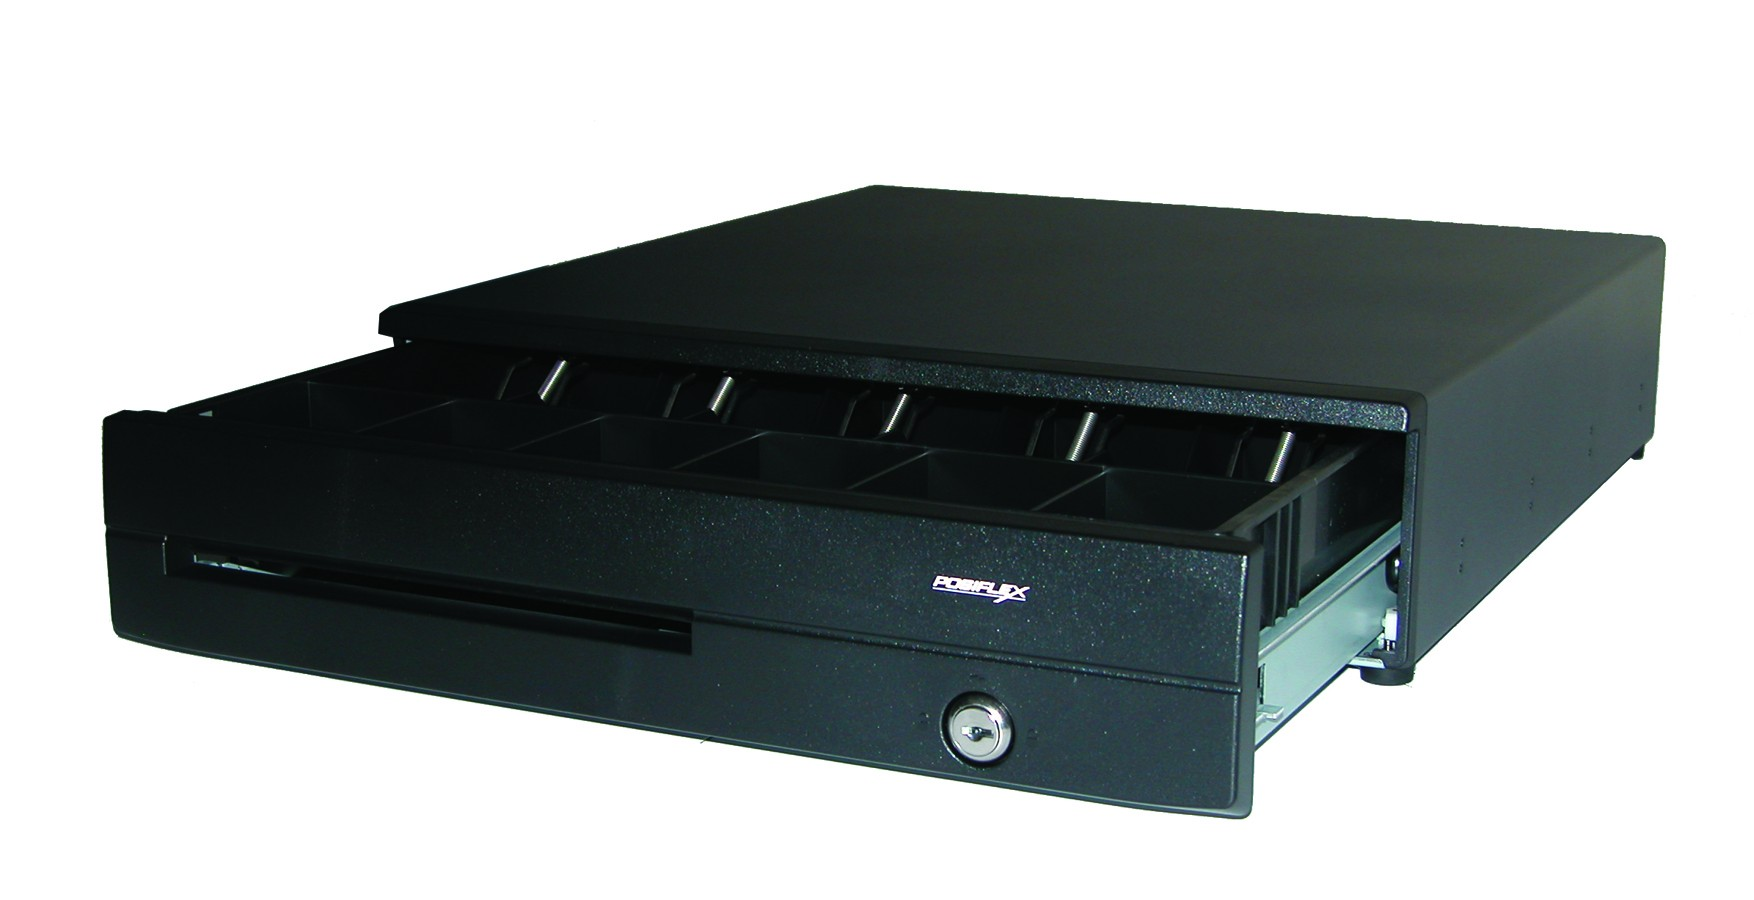 Cr6300 Cash Drawer Series Peripherals Products